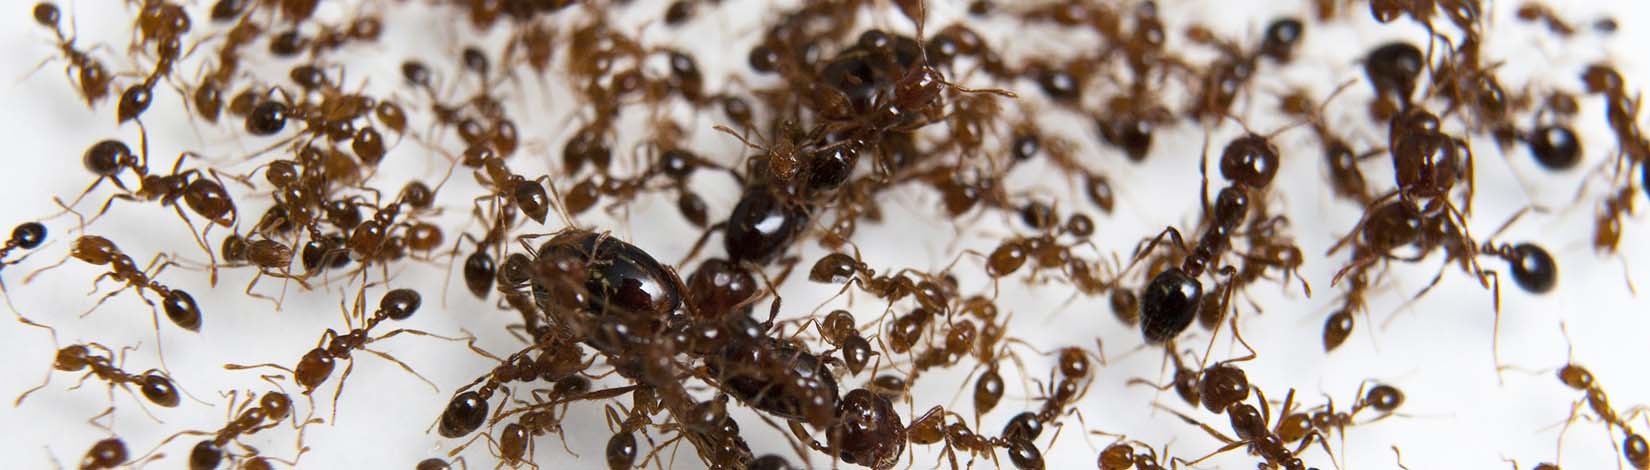 Sustainable Fire Ant Control Uf Ifas Extension